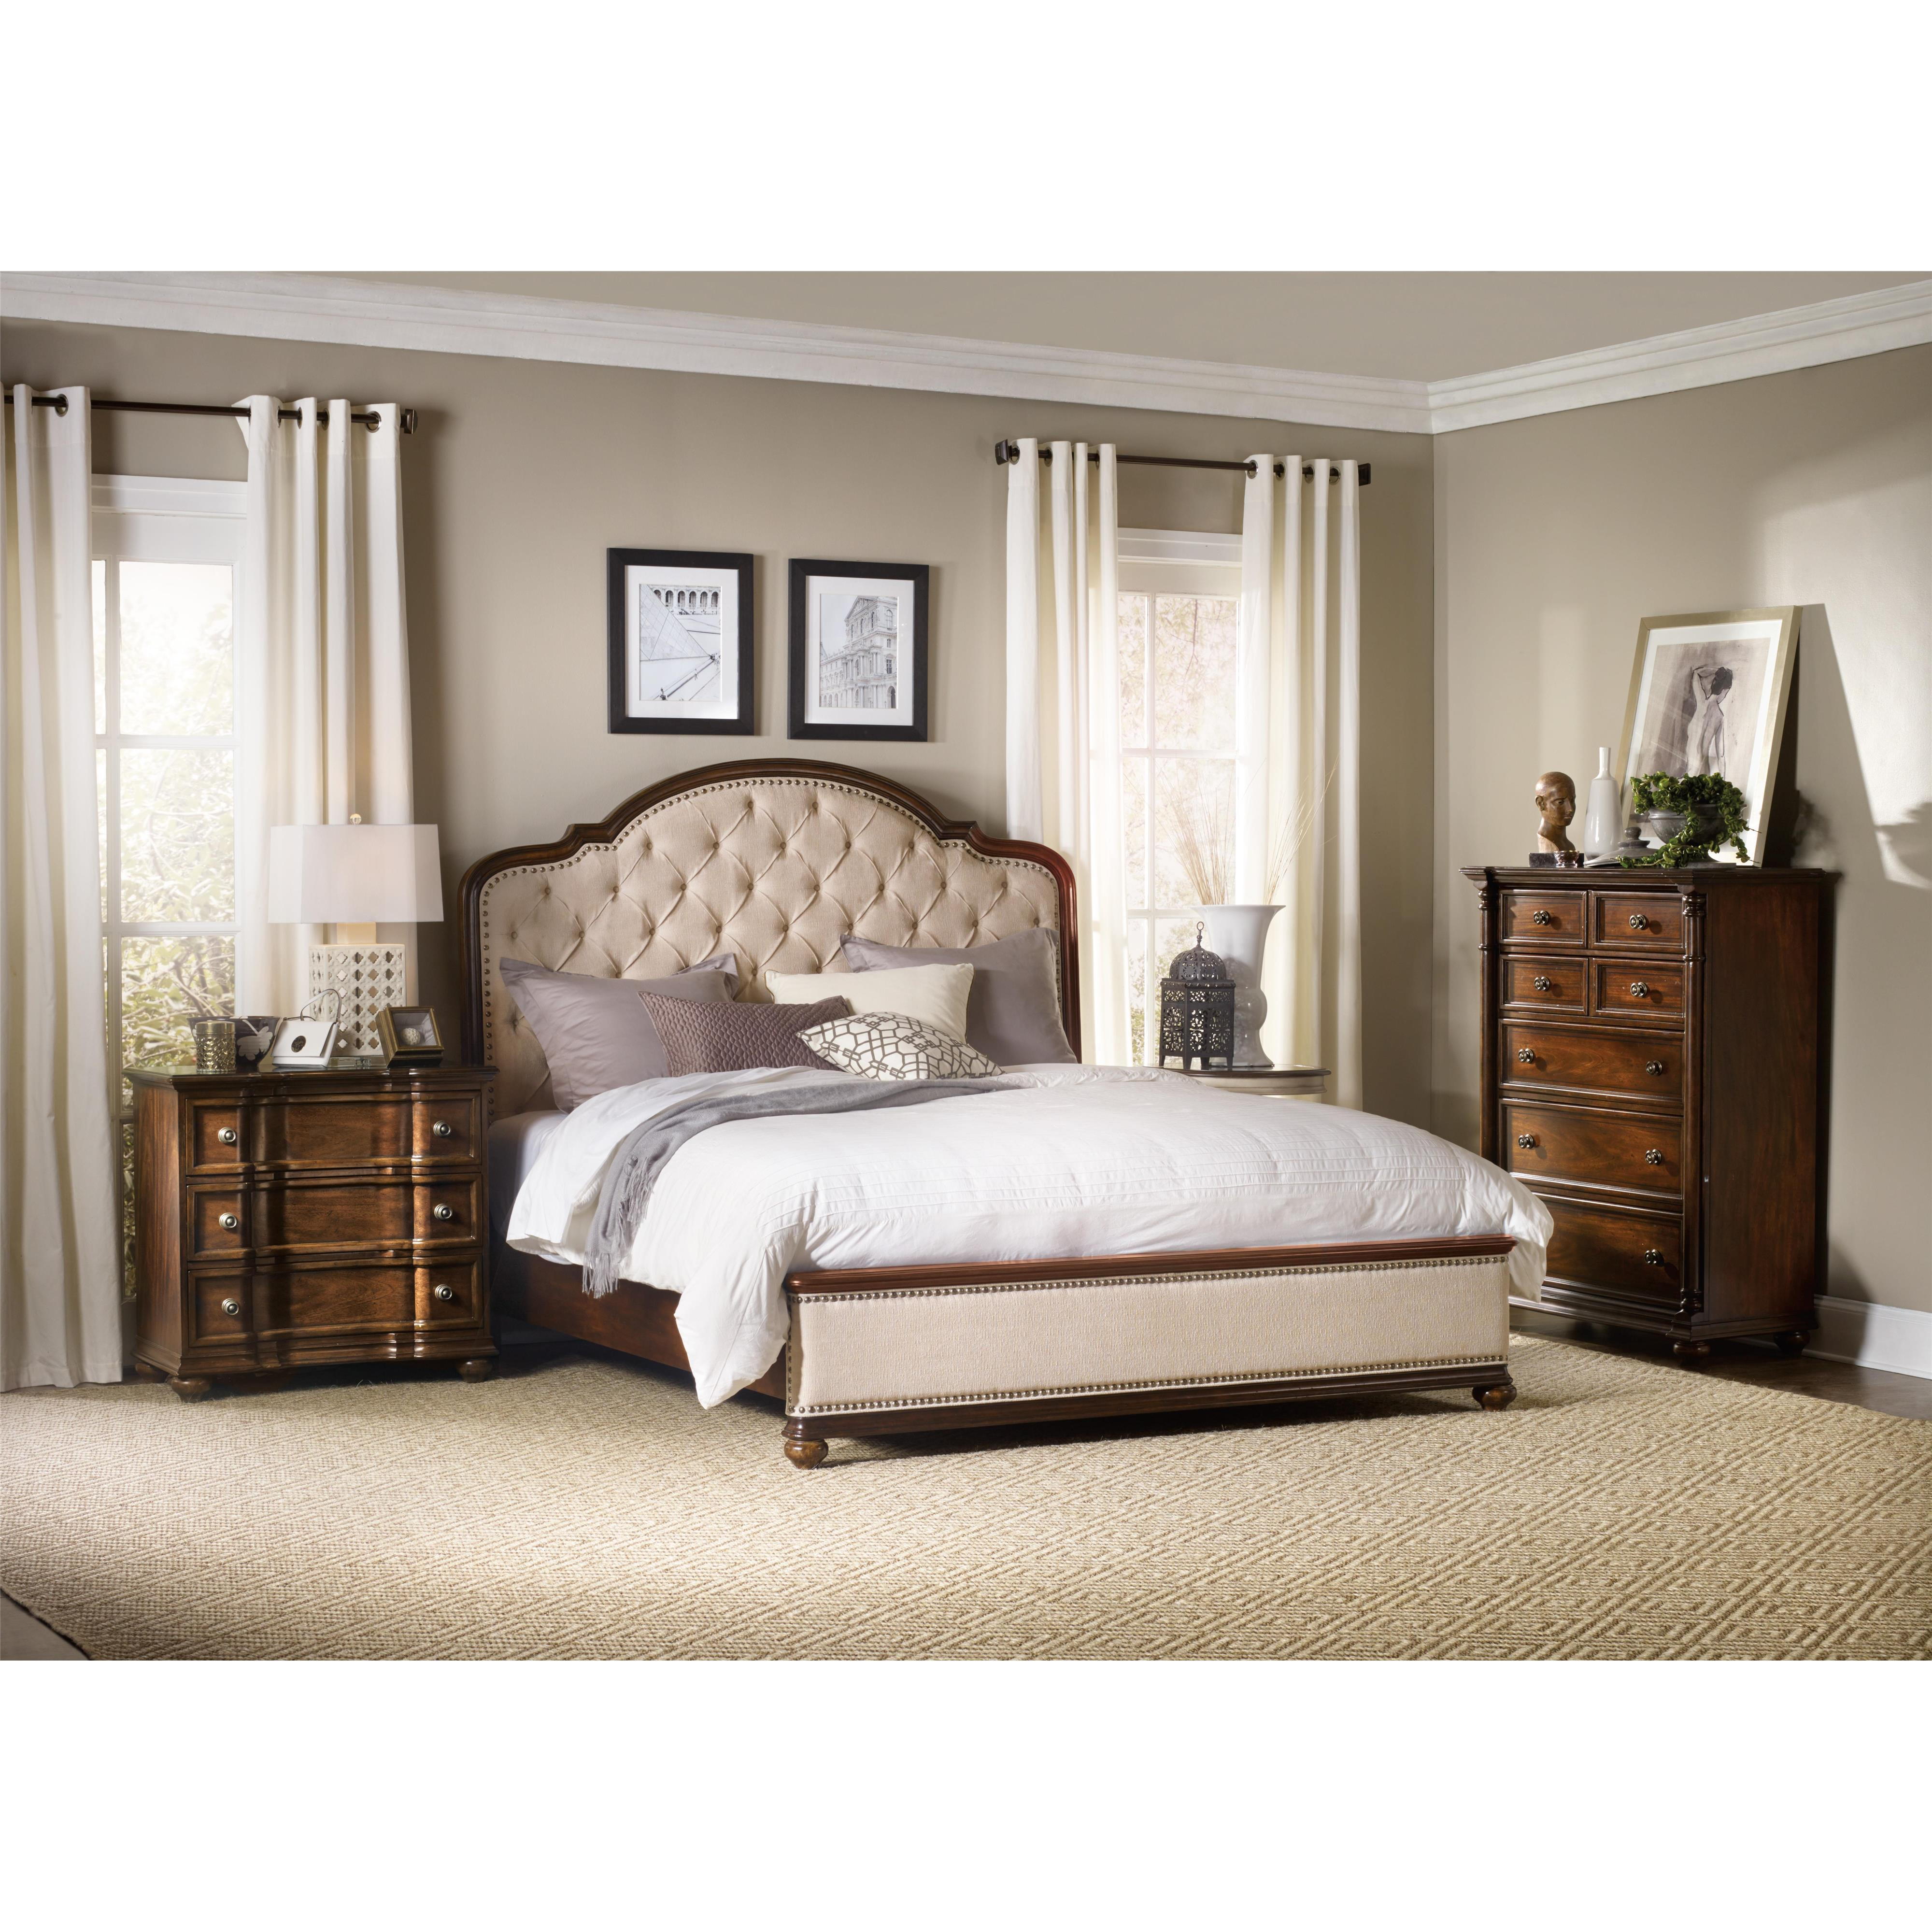 Leesburg California King Bedroom Group by Hooker Furniture at Suburban Furniture